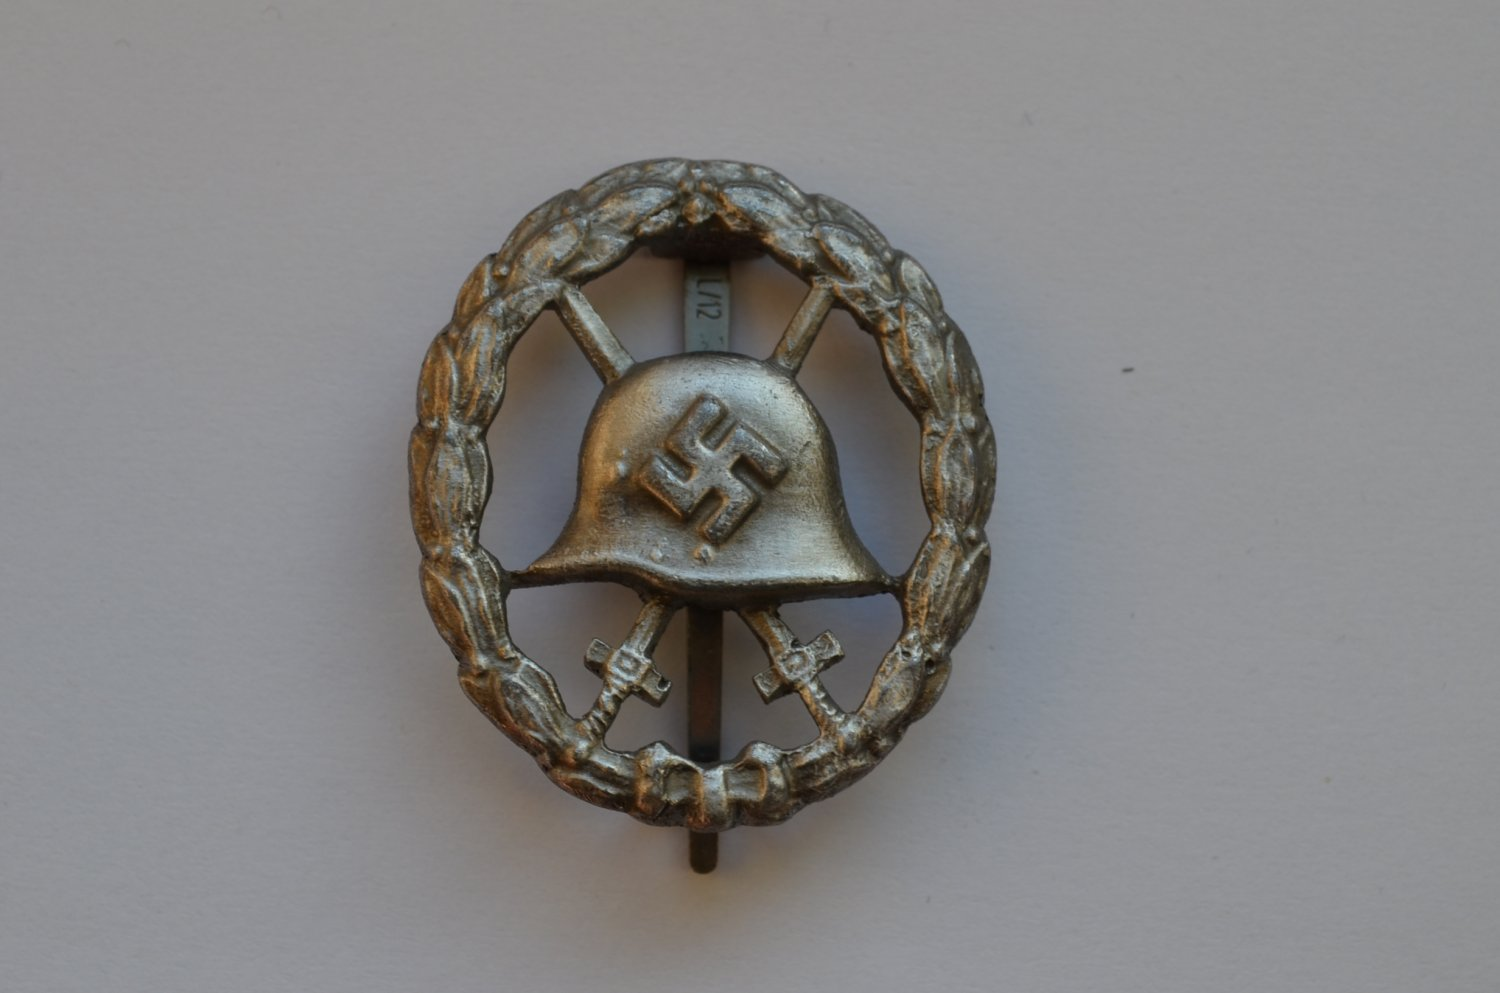 WWII THE GERMAN GOLD BADGE WOUND